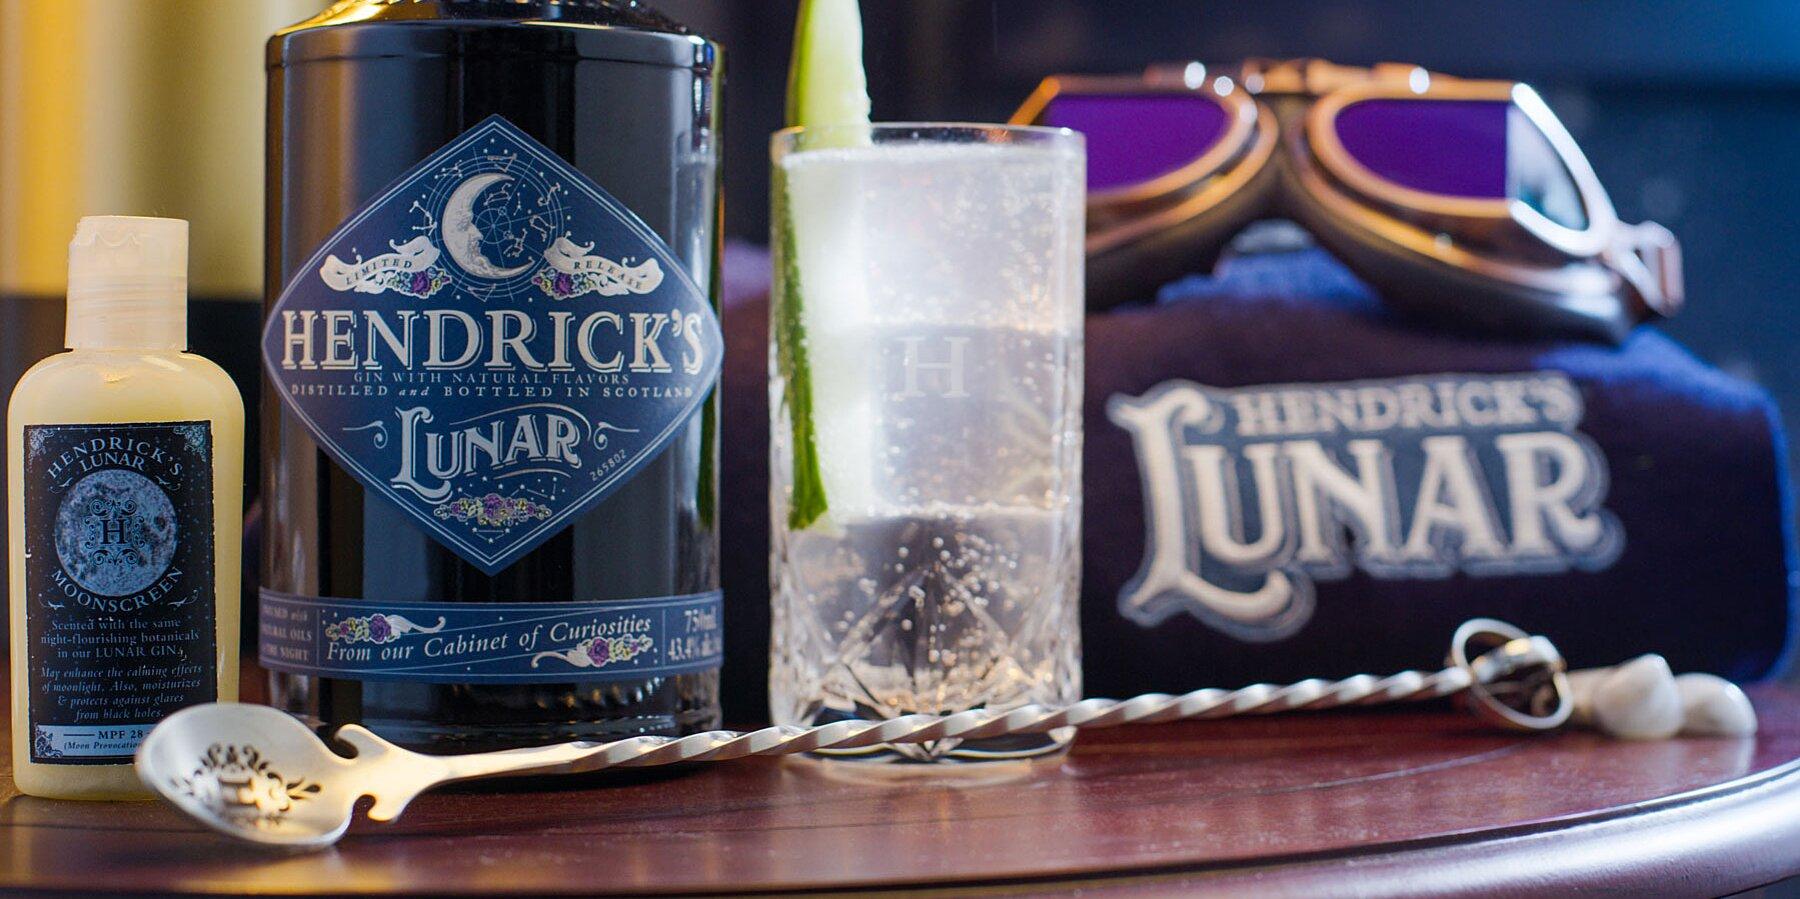 Hendrick's Is Releasing A Limited-edition Lunar Gin To Celebrate The First Full Moon Of 2021 photo